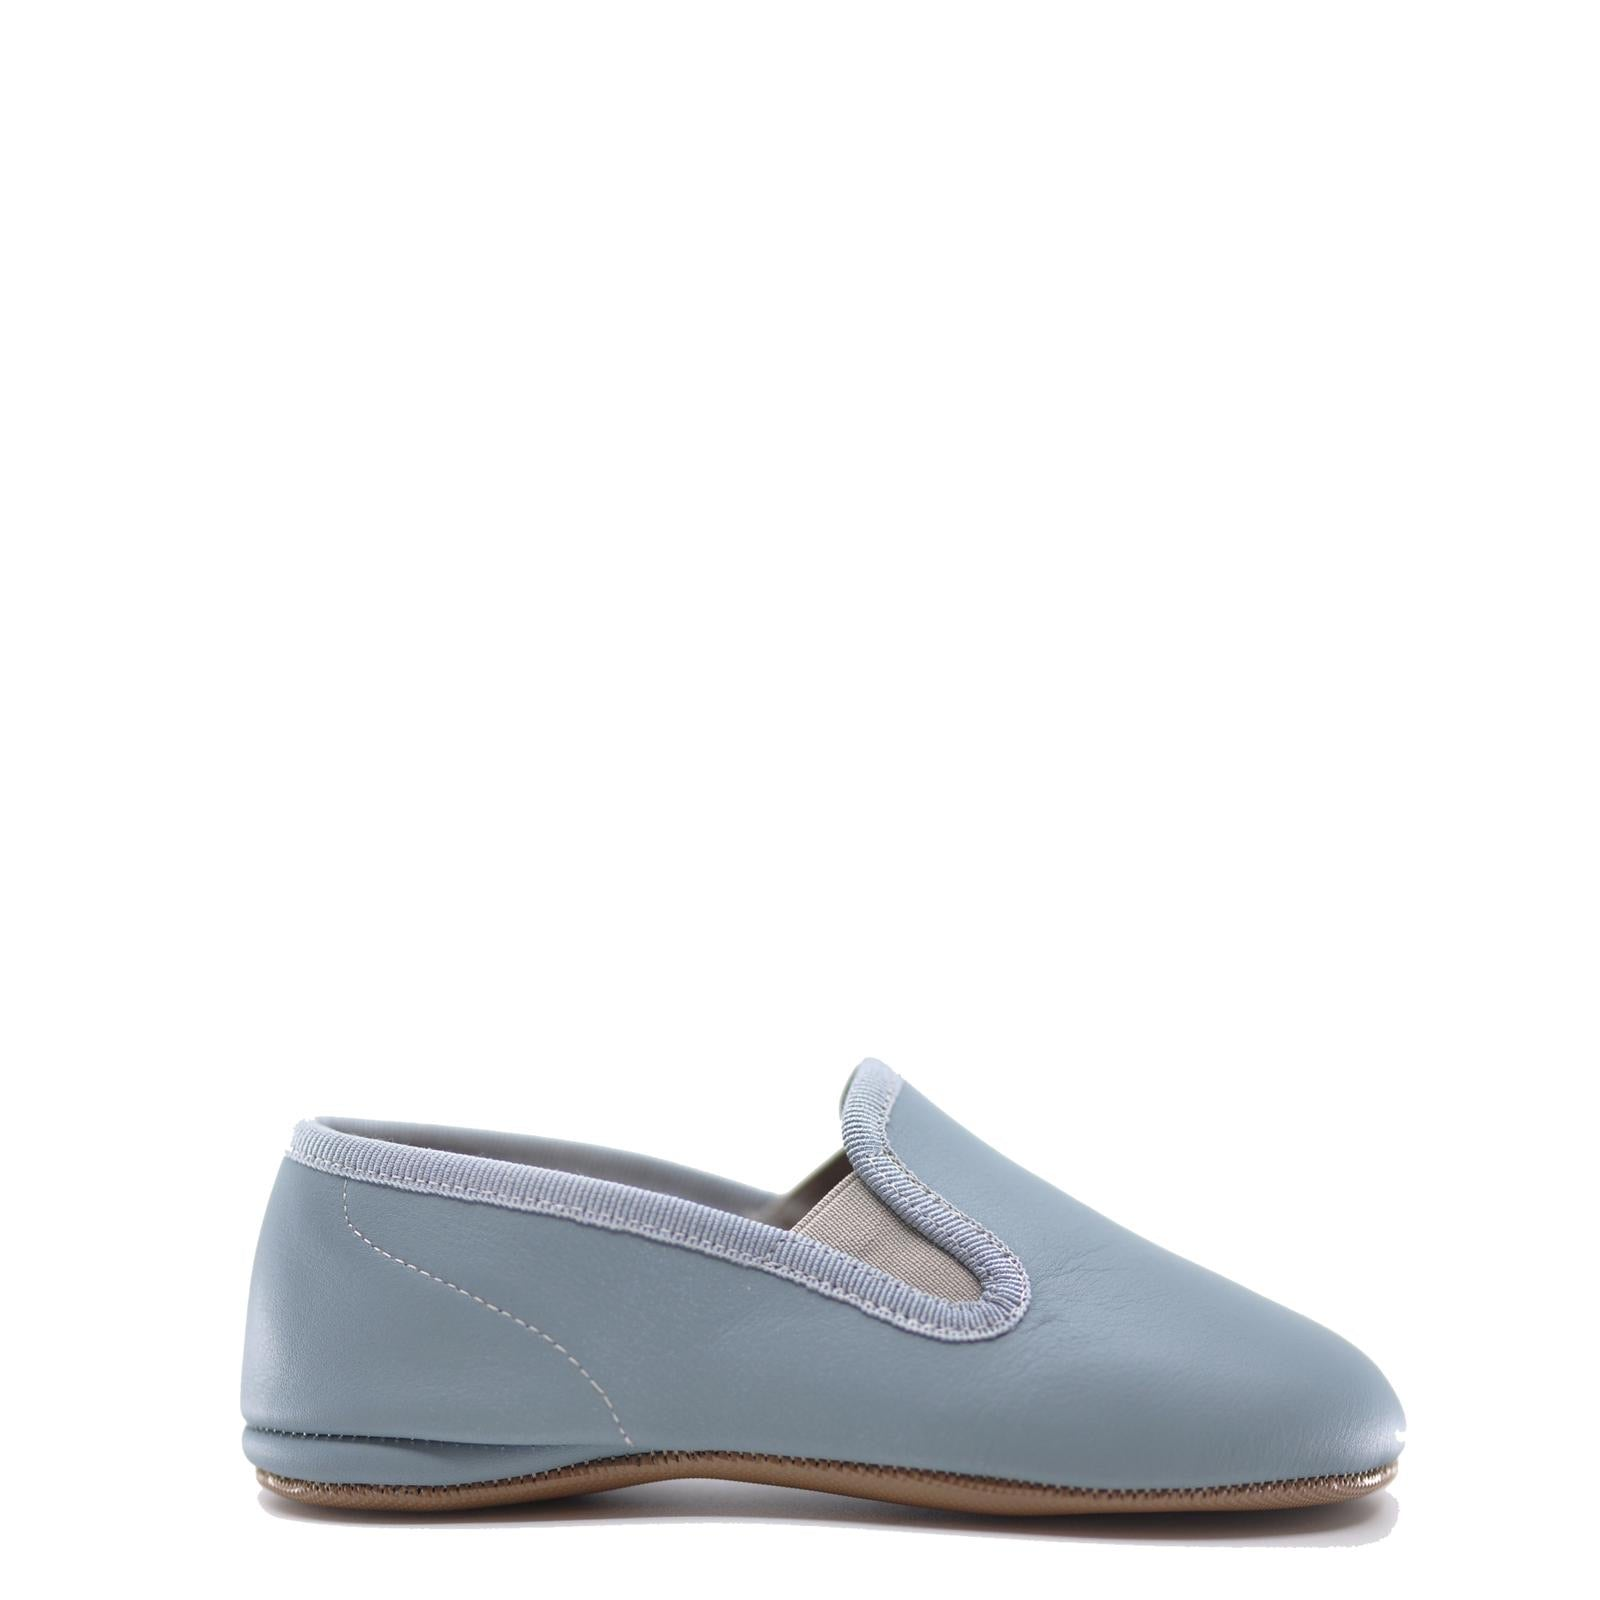 Pepe Sky Blue Slipper Loafer-Tassel Children Shoes